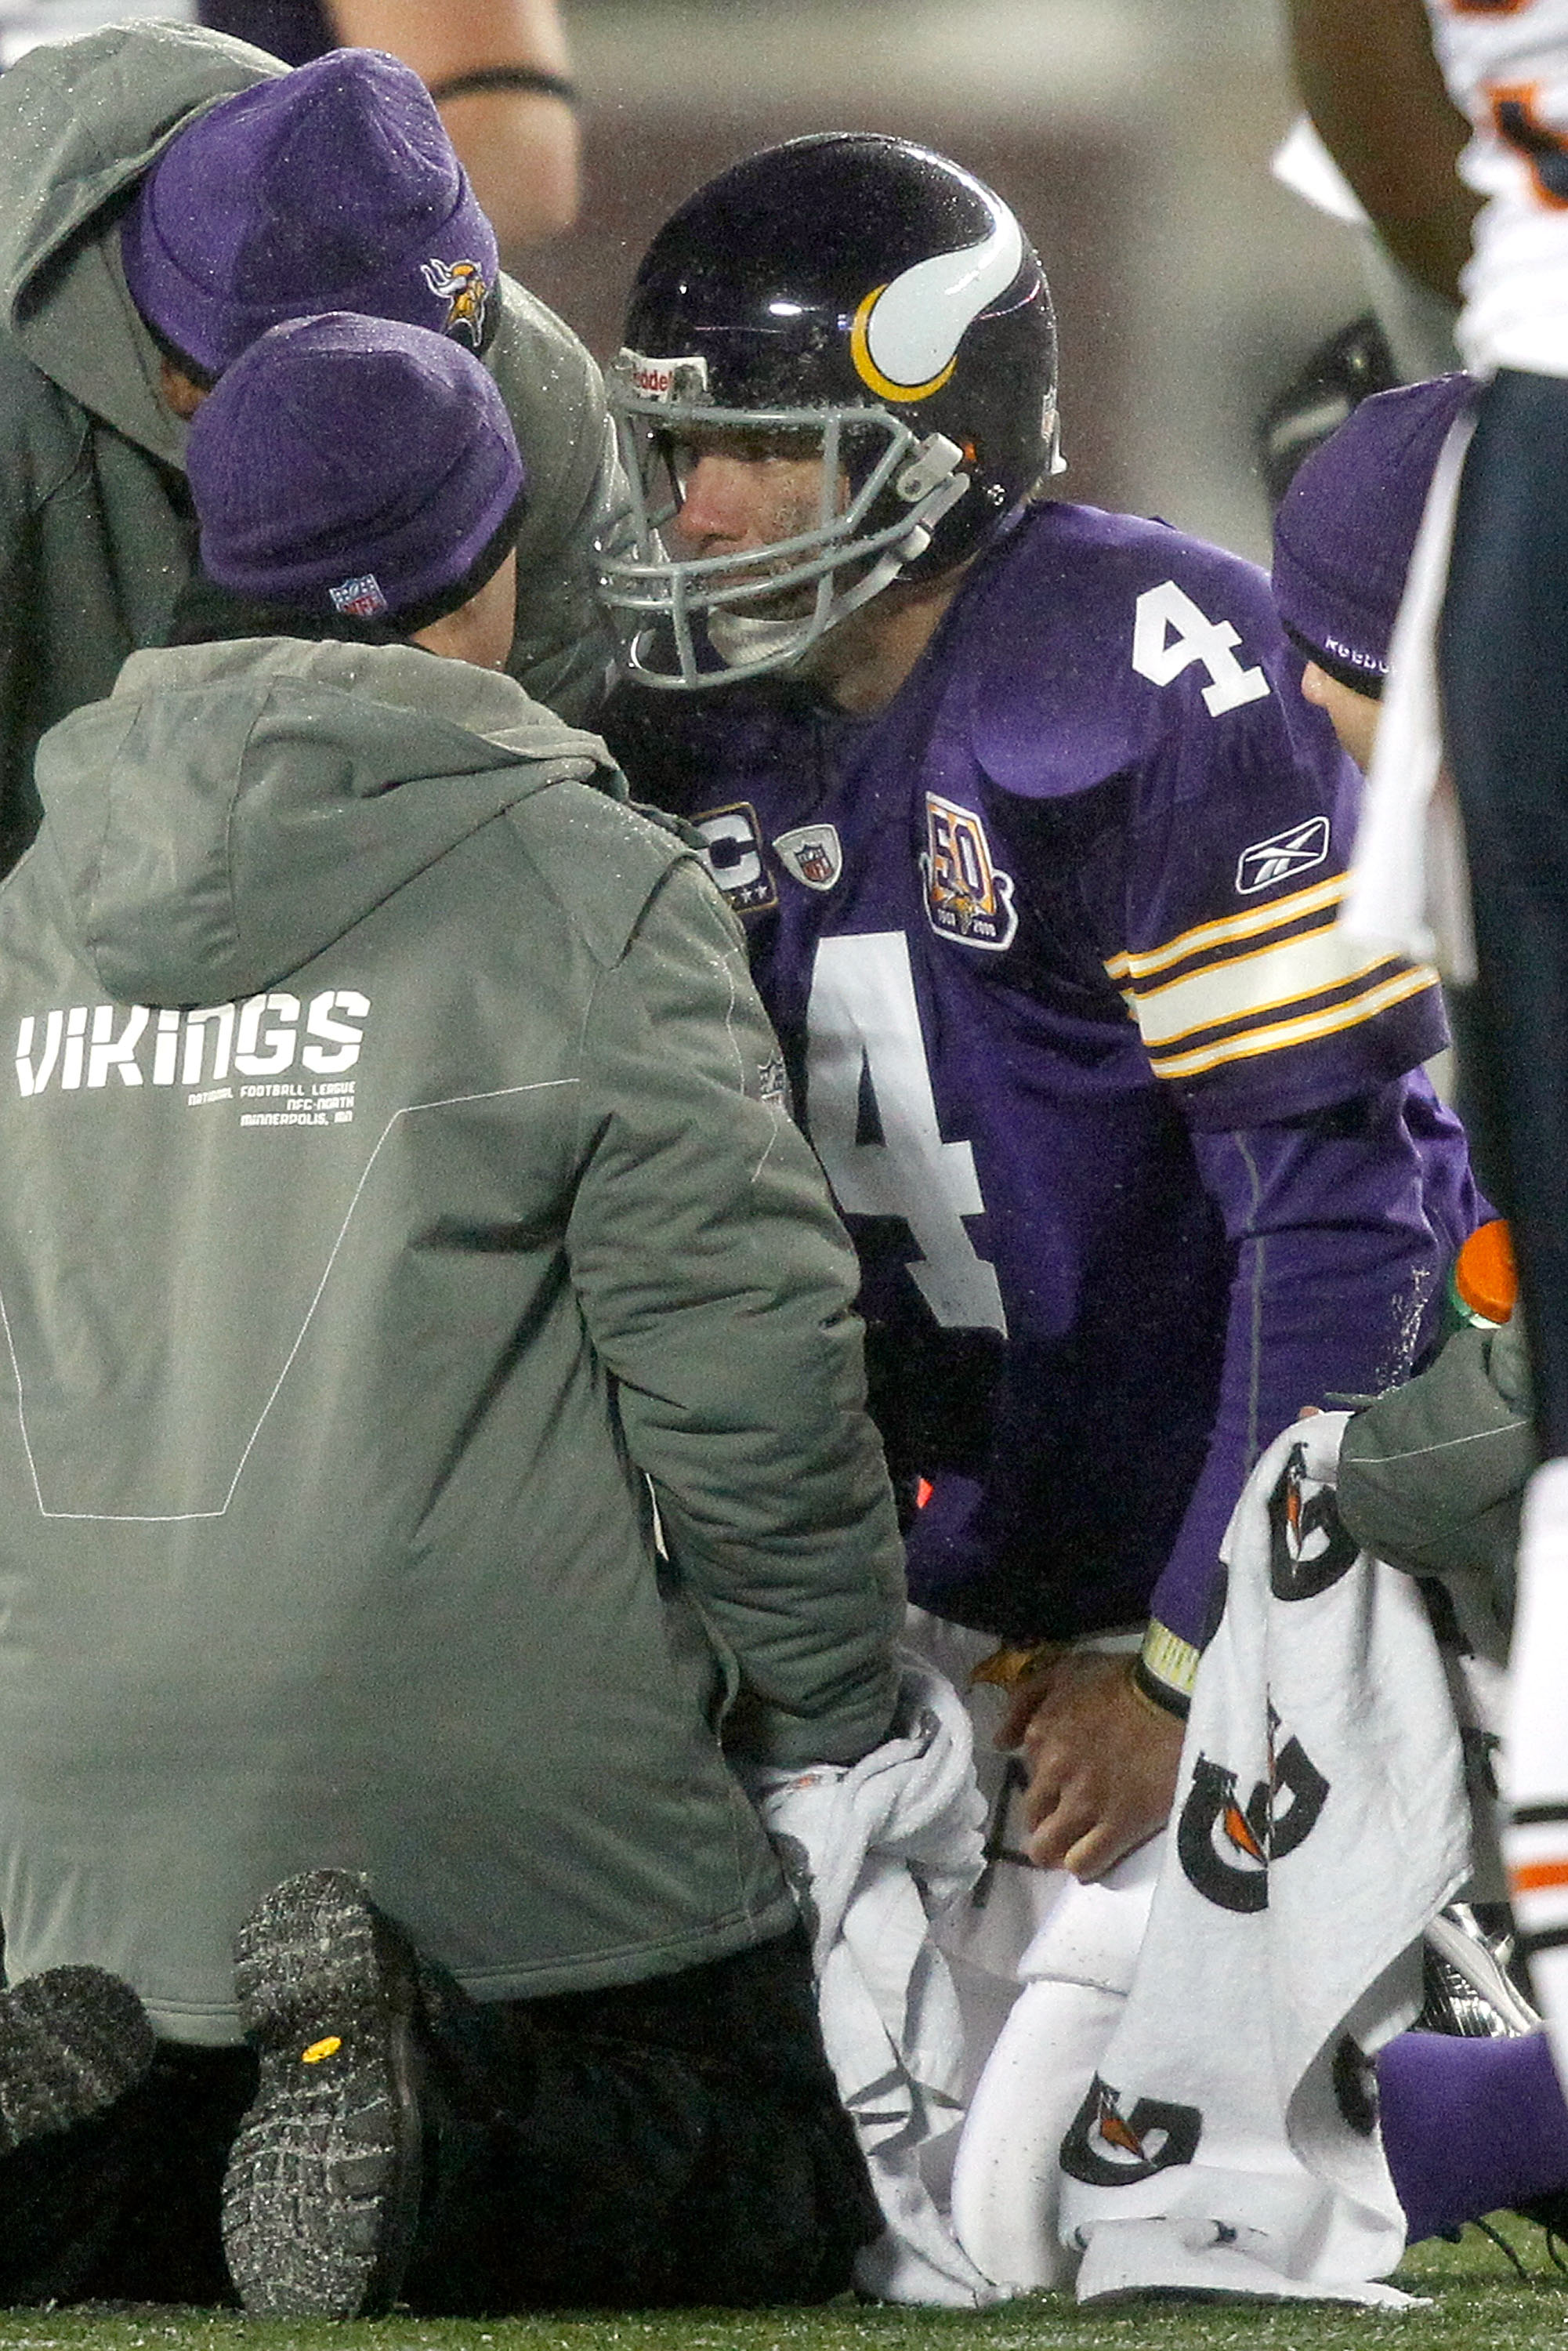 MINNEAPOLIS, MN - DECEMBER 20:  Quarterback Brett Favre #4 of the Minnesota Vikings is attended to after being sacked by the Chicago Bears at TCF Bank Stadium on December 20, 2010 in Minneapolis, Minnesota.  (Photo by Matthew Stockman/Getty Images)